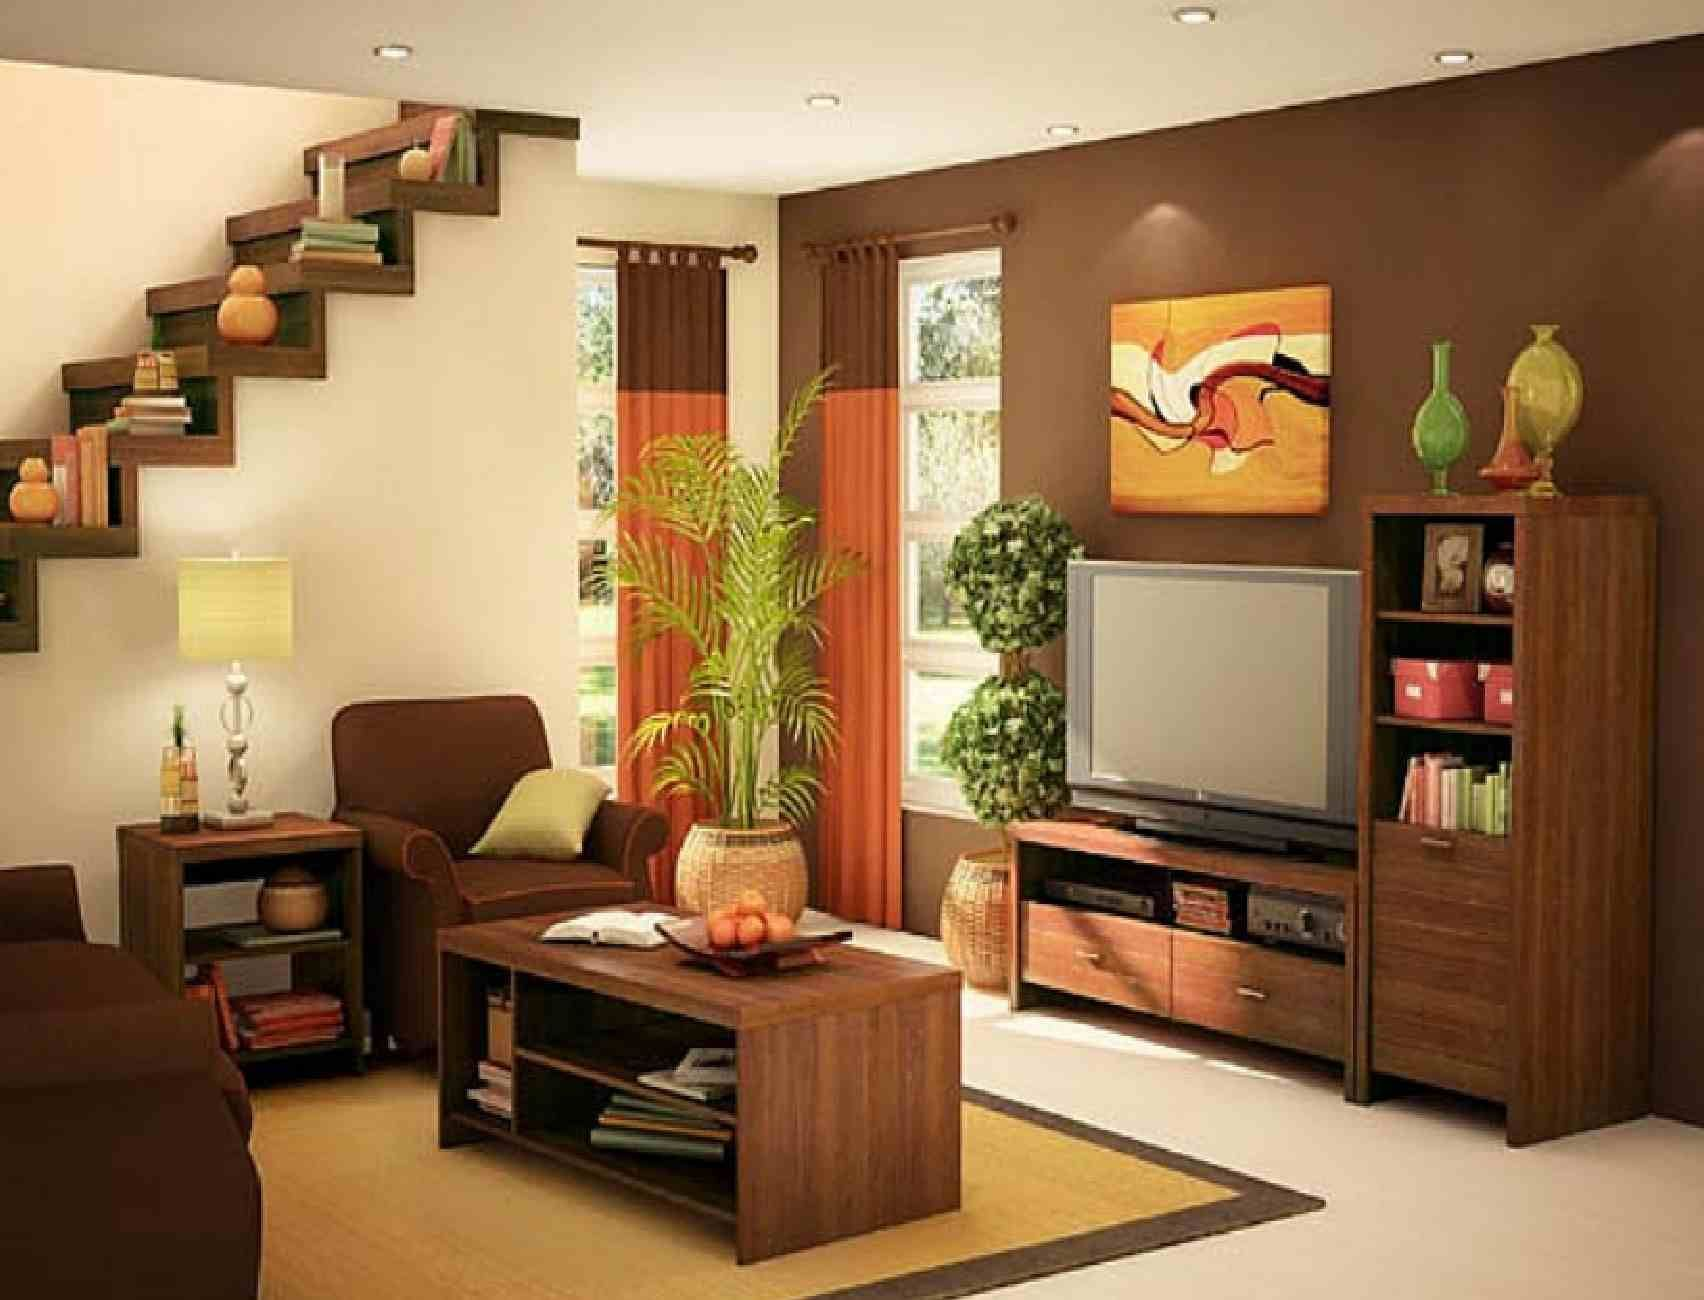 Home Pleasing Stylish Decorating Decorations Simple Zen Bedroom And Cool Bedroom Decorating